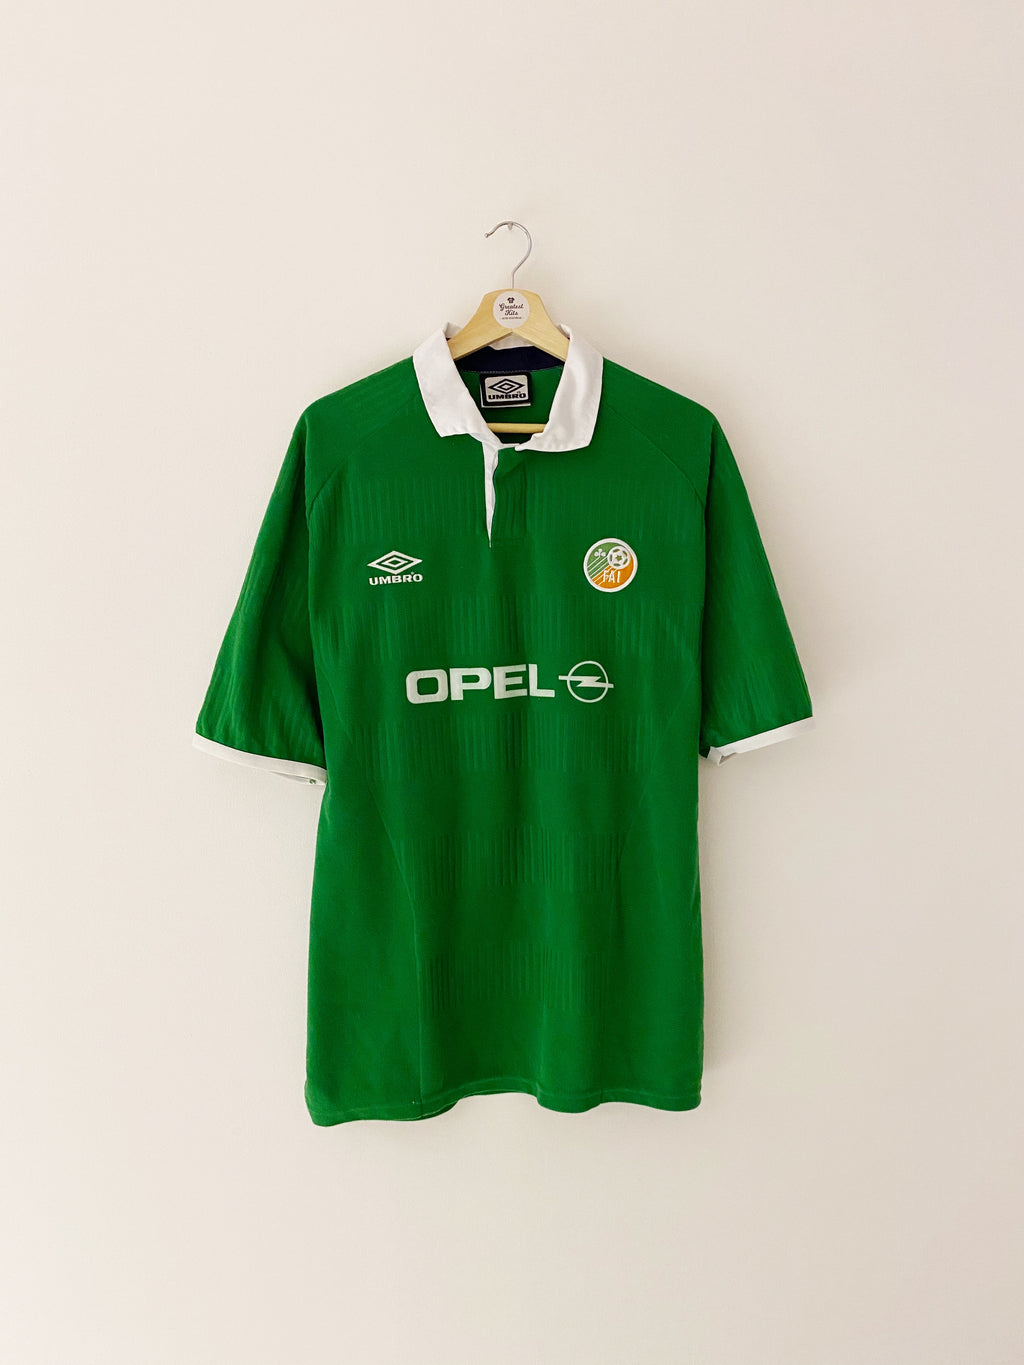 2000/01 Ireland Home Shirt (L) 8.5/10